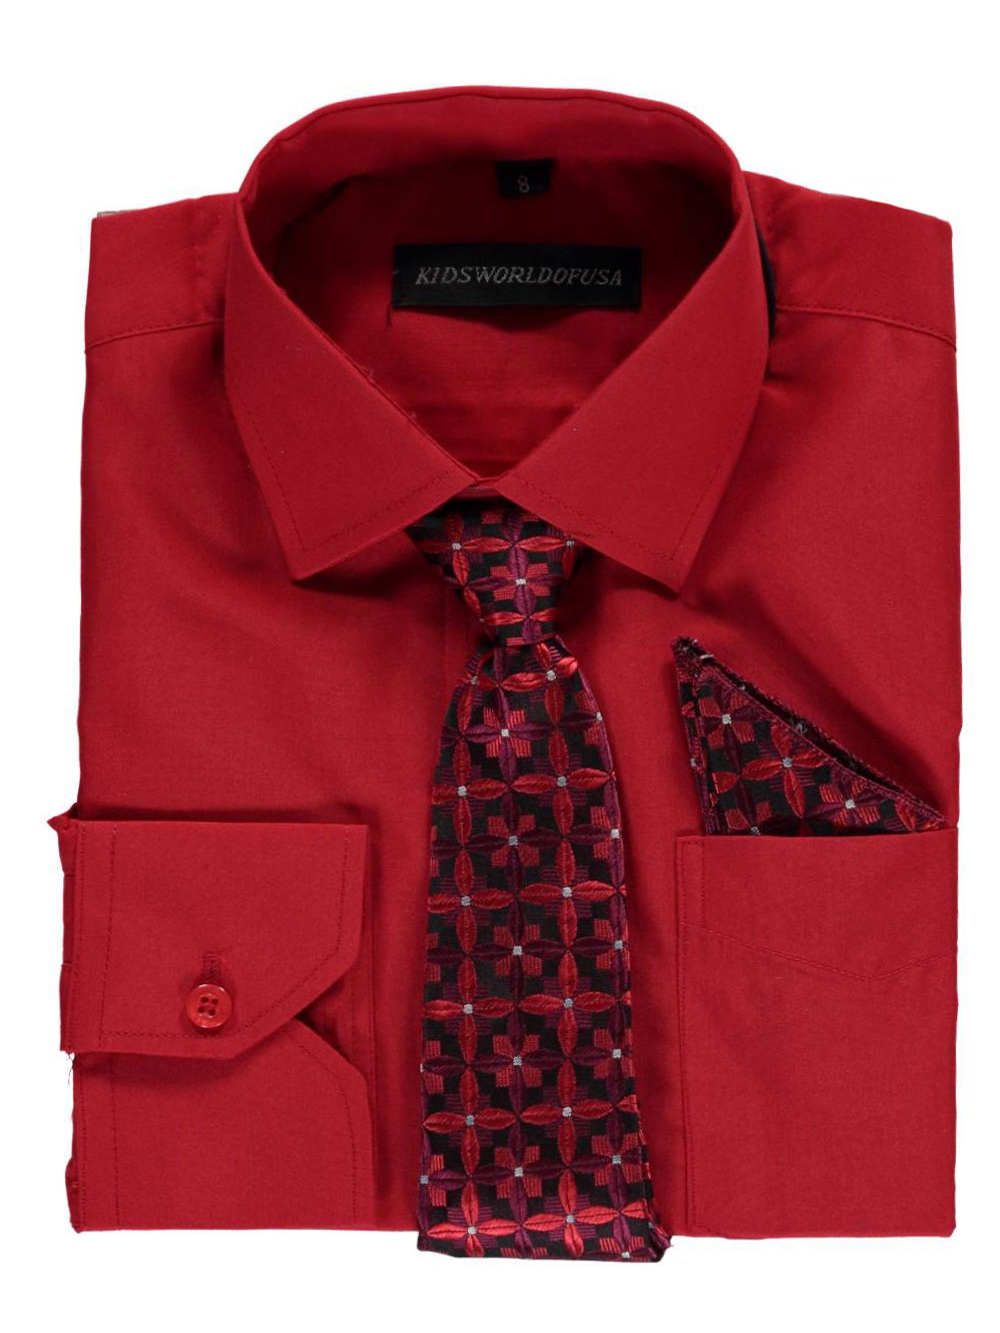 Kids World Little Boys' Dress Shirt with Accessories (Sizes 4 - 7)